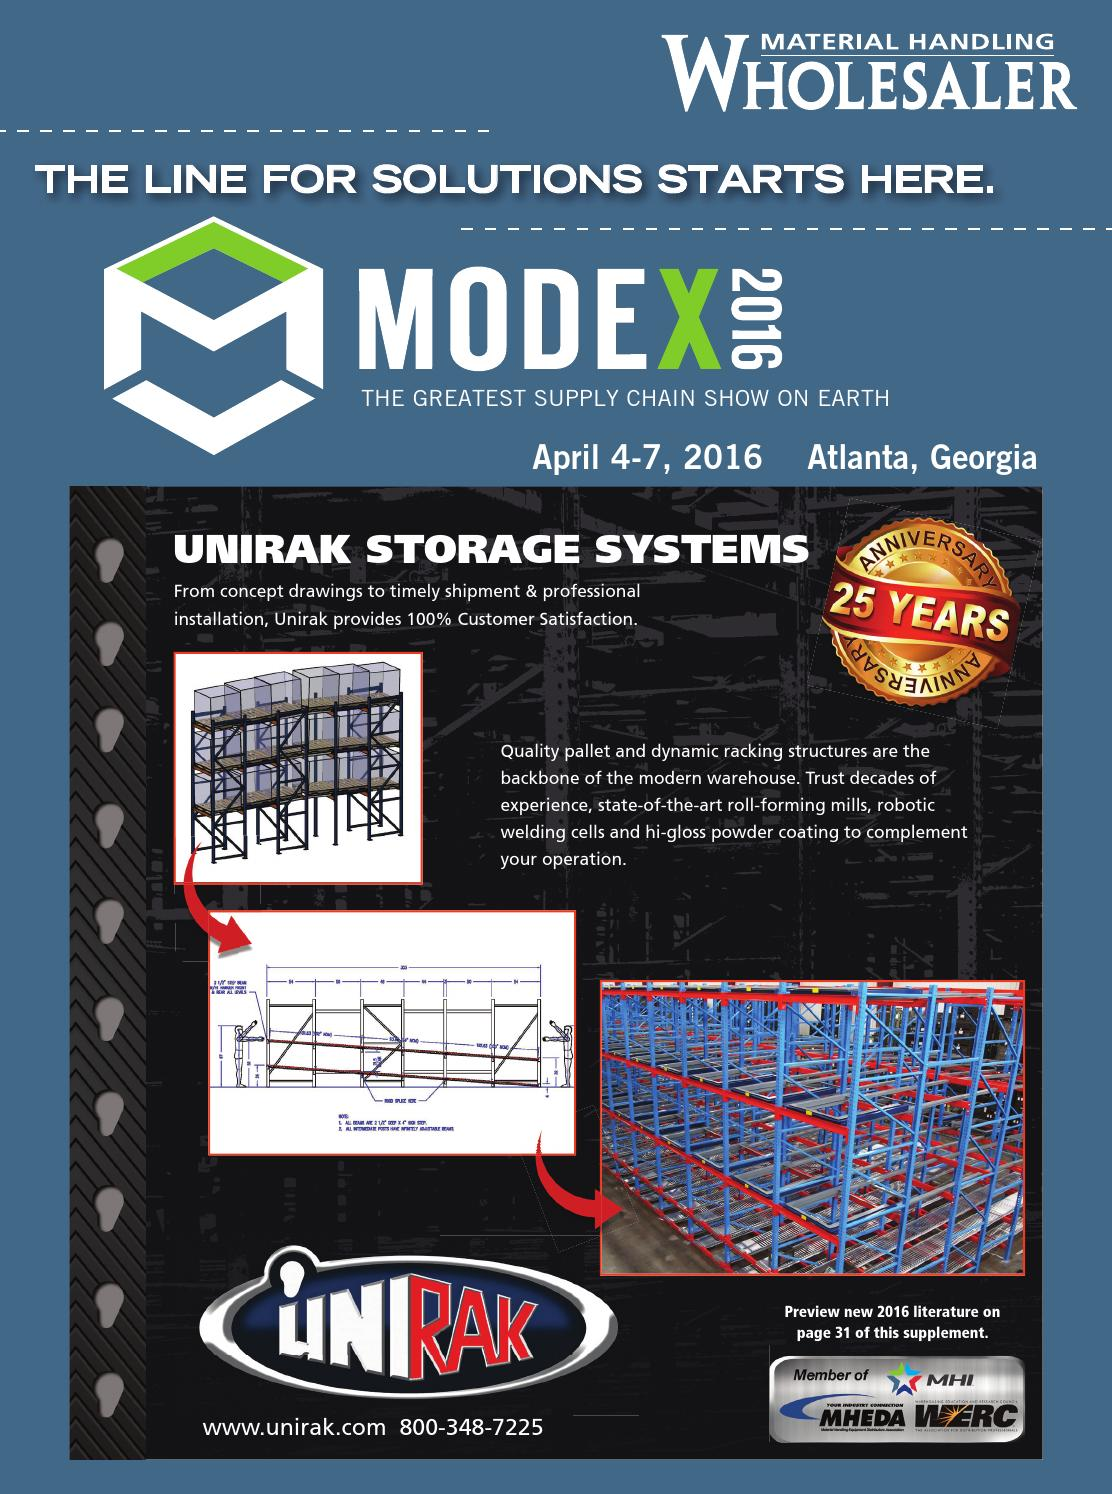 Material Handling Wholesaler's guide to MODEX 2016 by